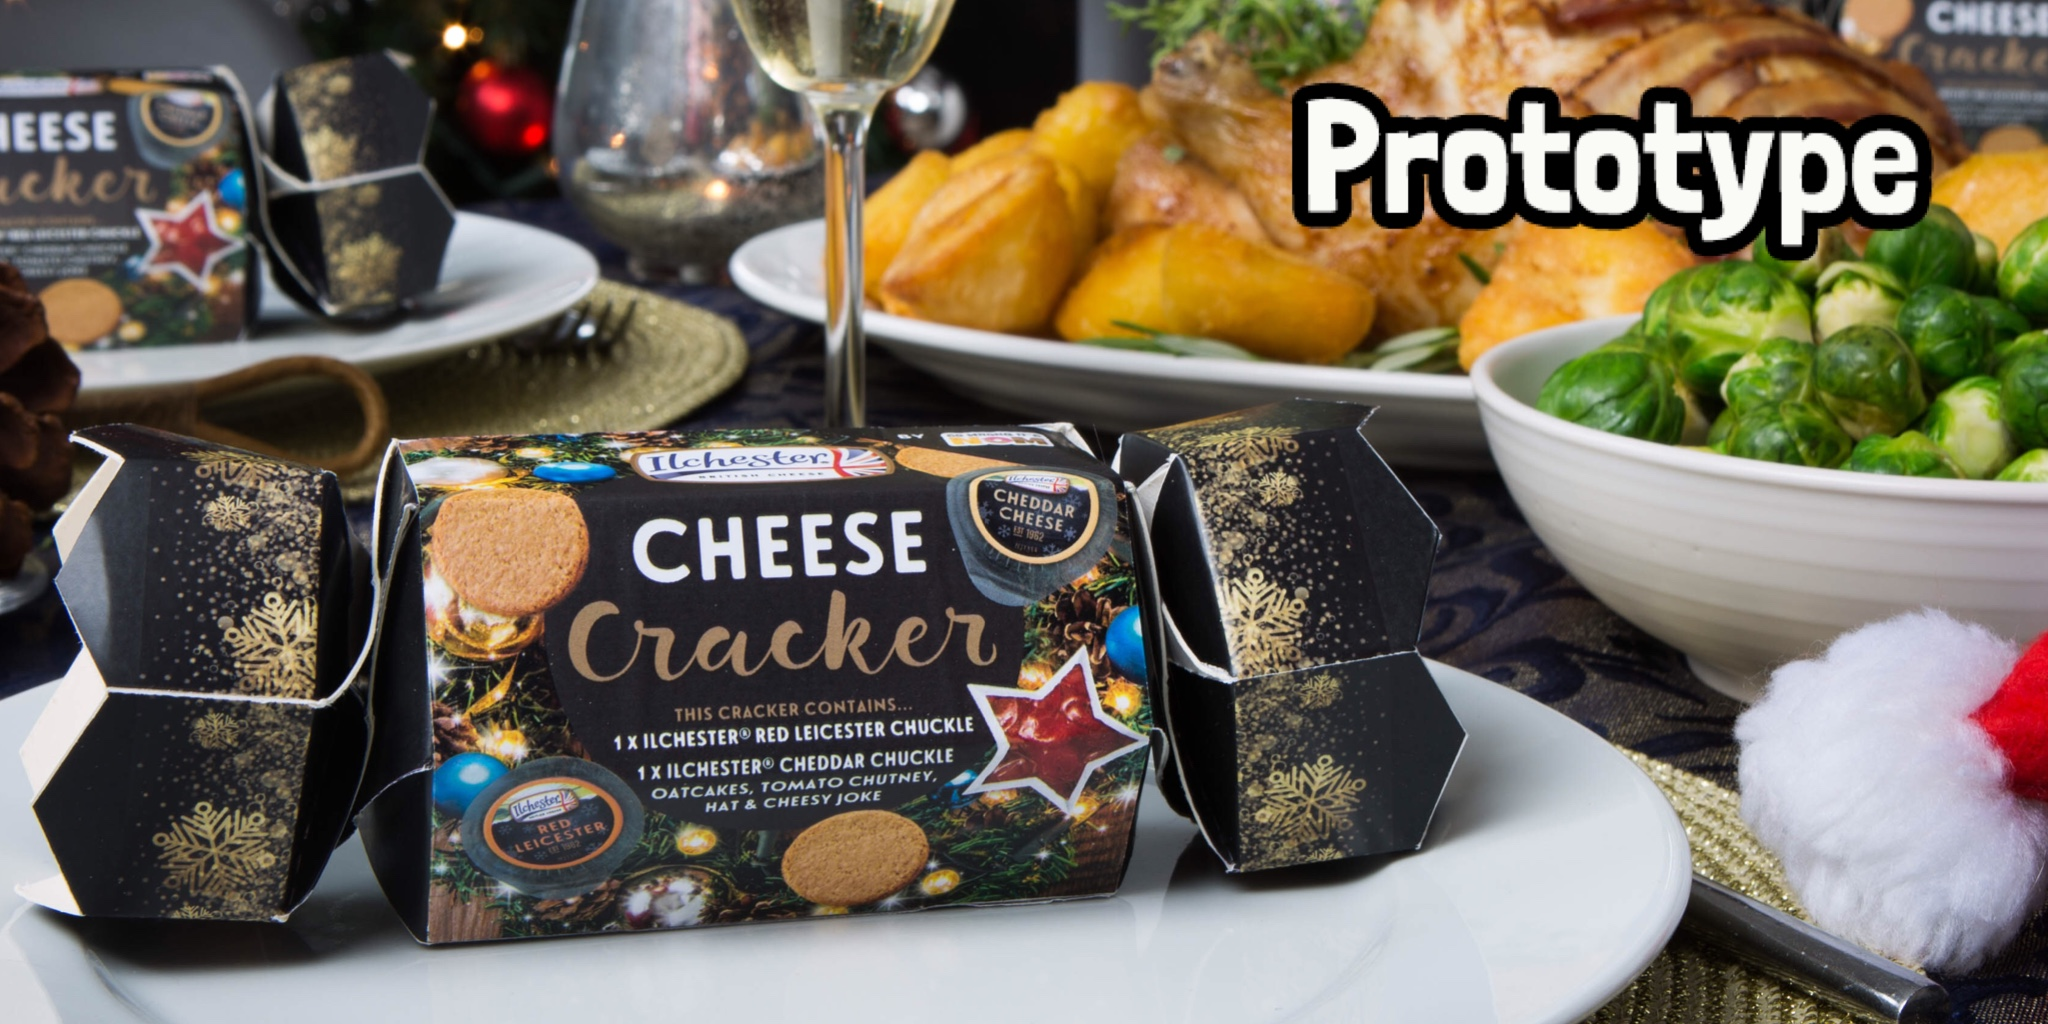 Would you buy this Cheese Cracker?